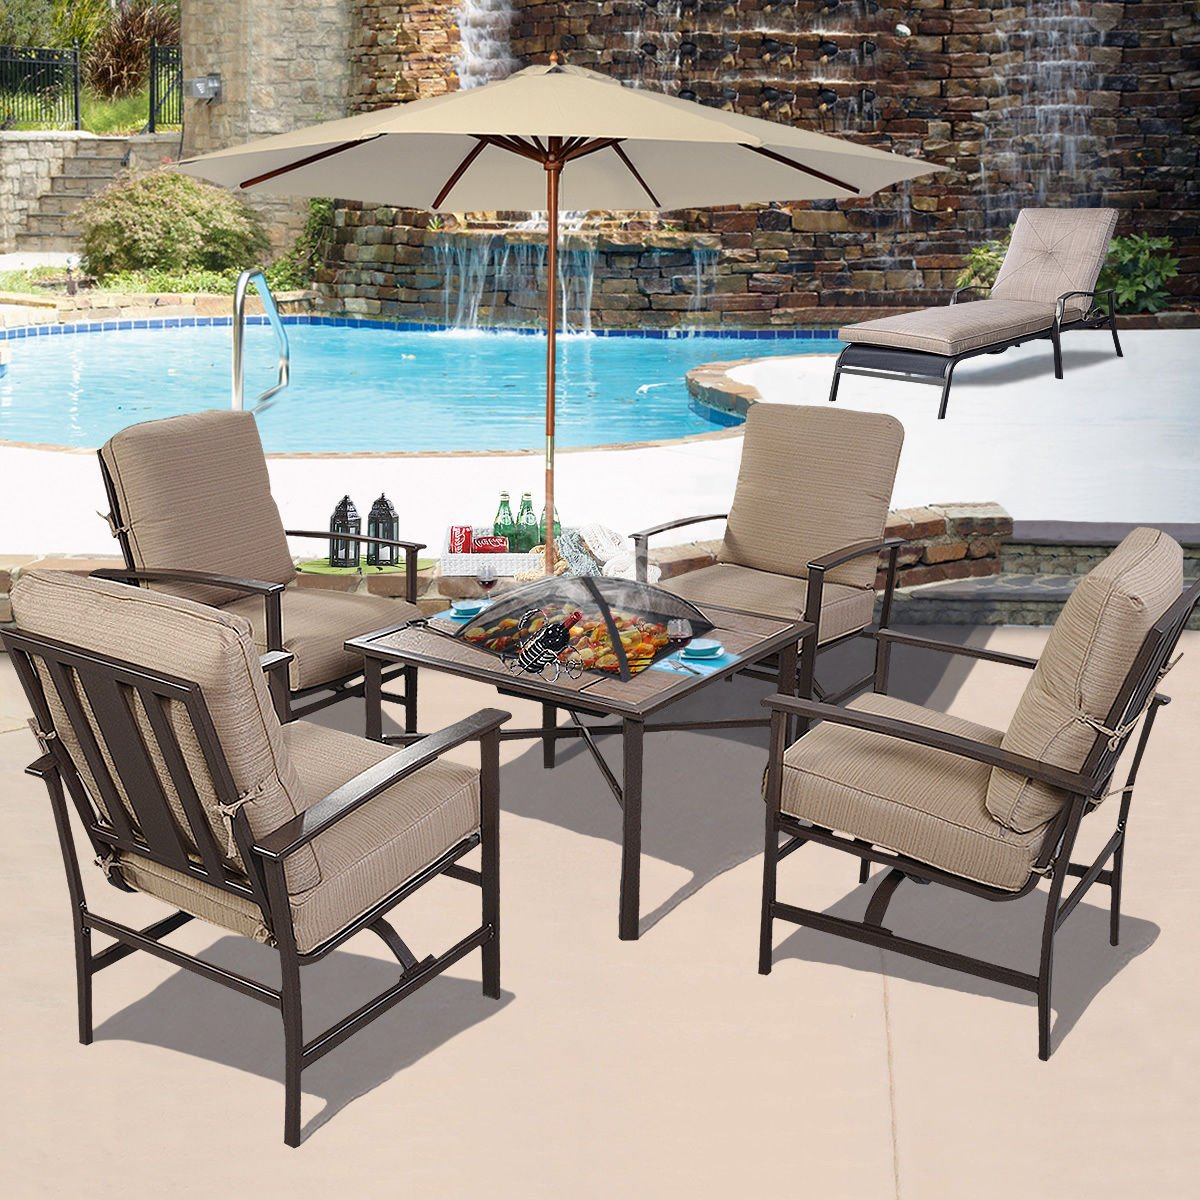 Amazon.com: GHP Outdoor Patio 5 Piece Chair U0026 BBQ Stove Fire Pit Table  Furniture Set W Umbrella: Garden U0026 Outdoor